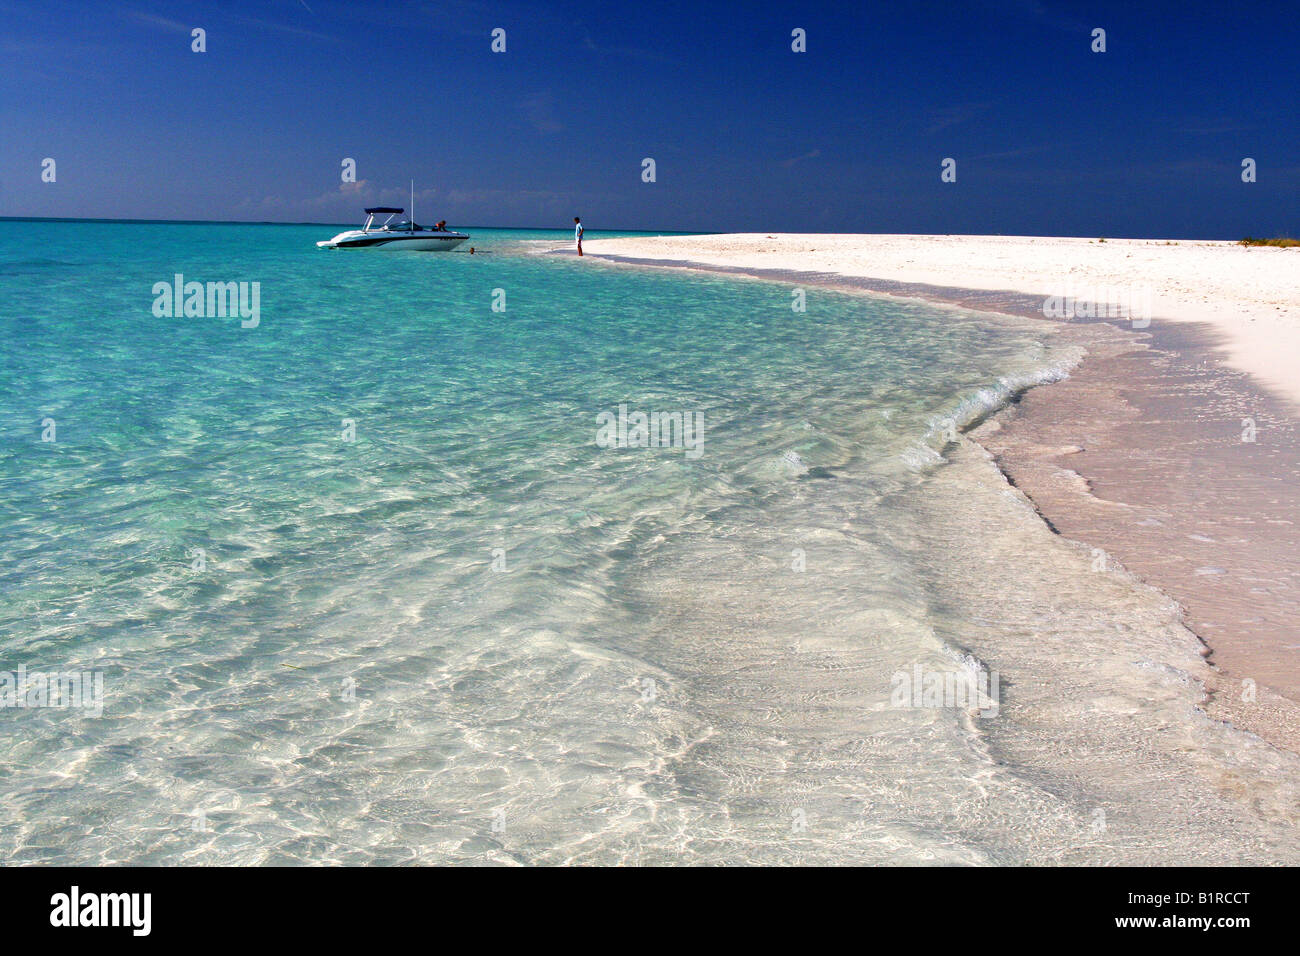 secluded beach in Turks and Caicos - Stock Image